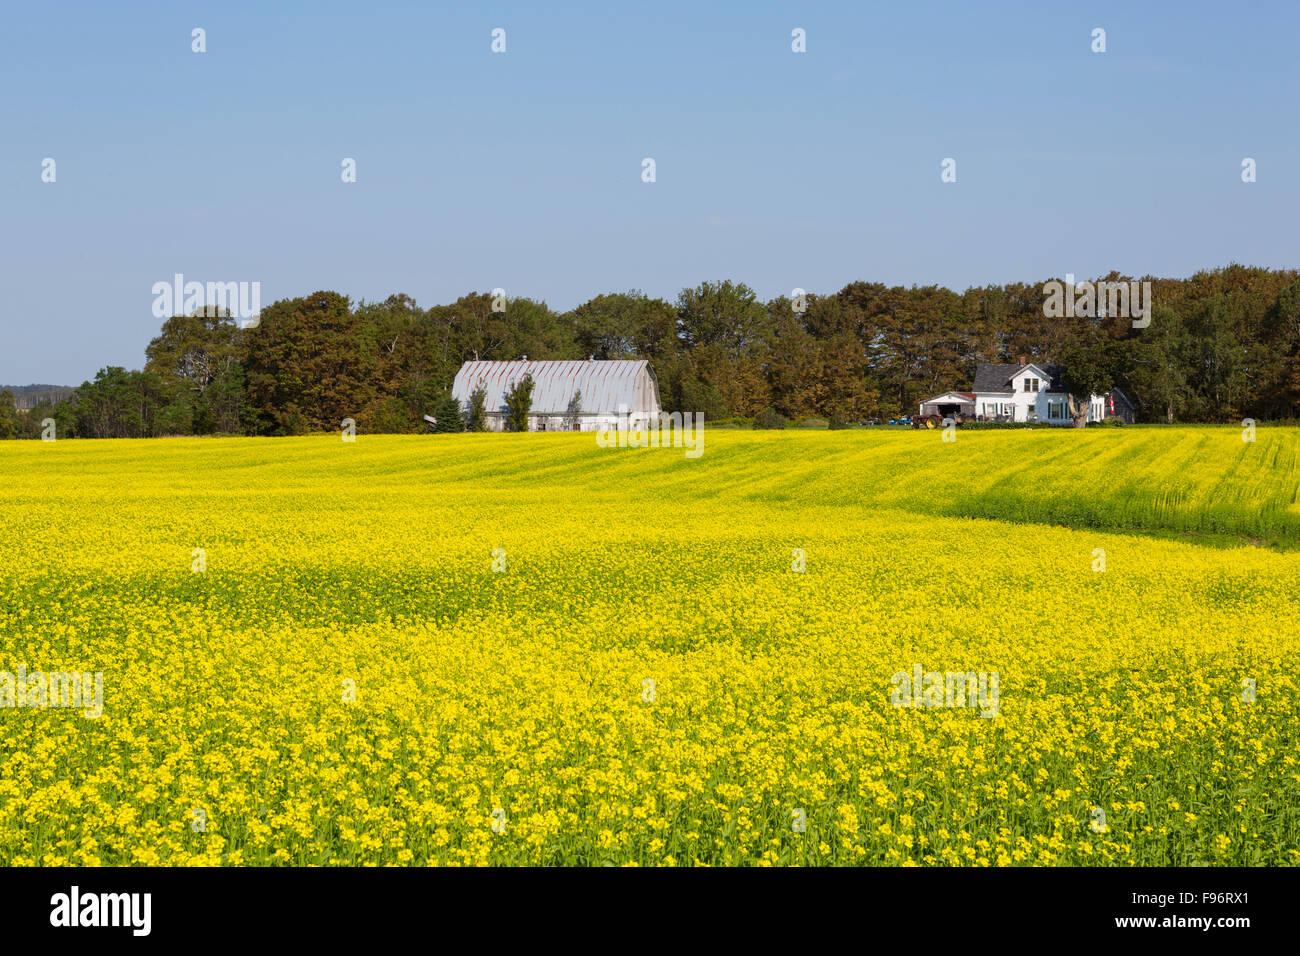 Farm and Brown Mustard field in Bloom, Crapaud, Prince Edward Island, Canada Stock Photo